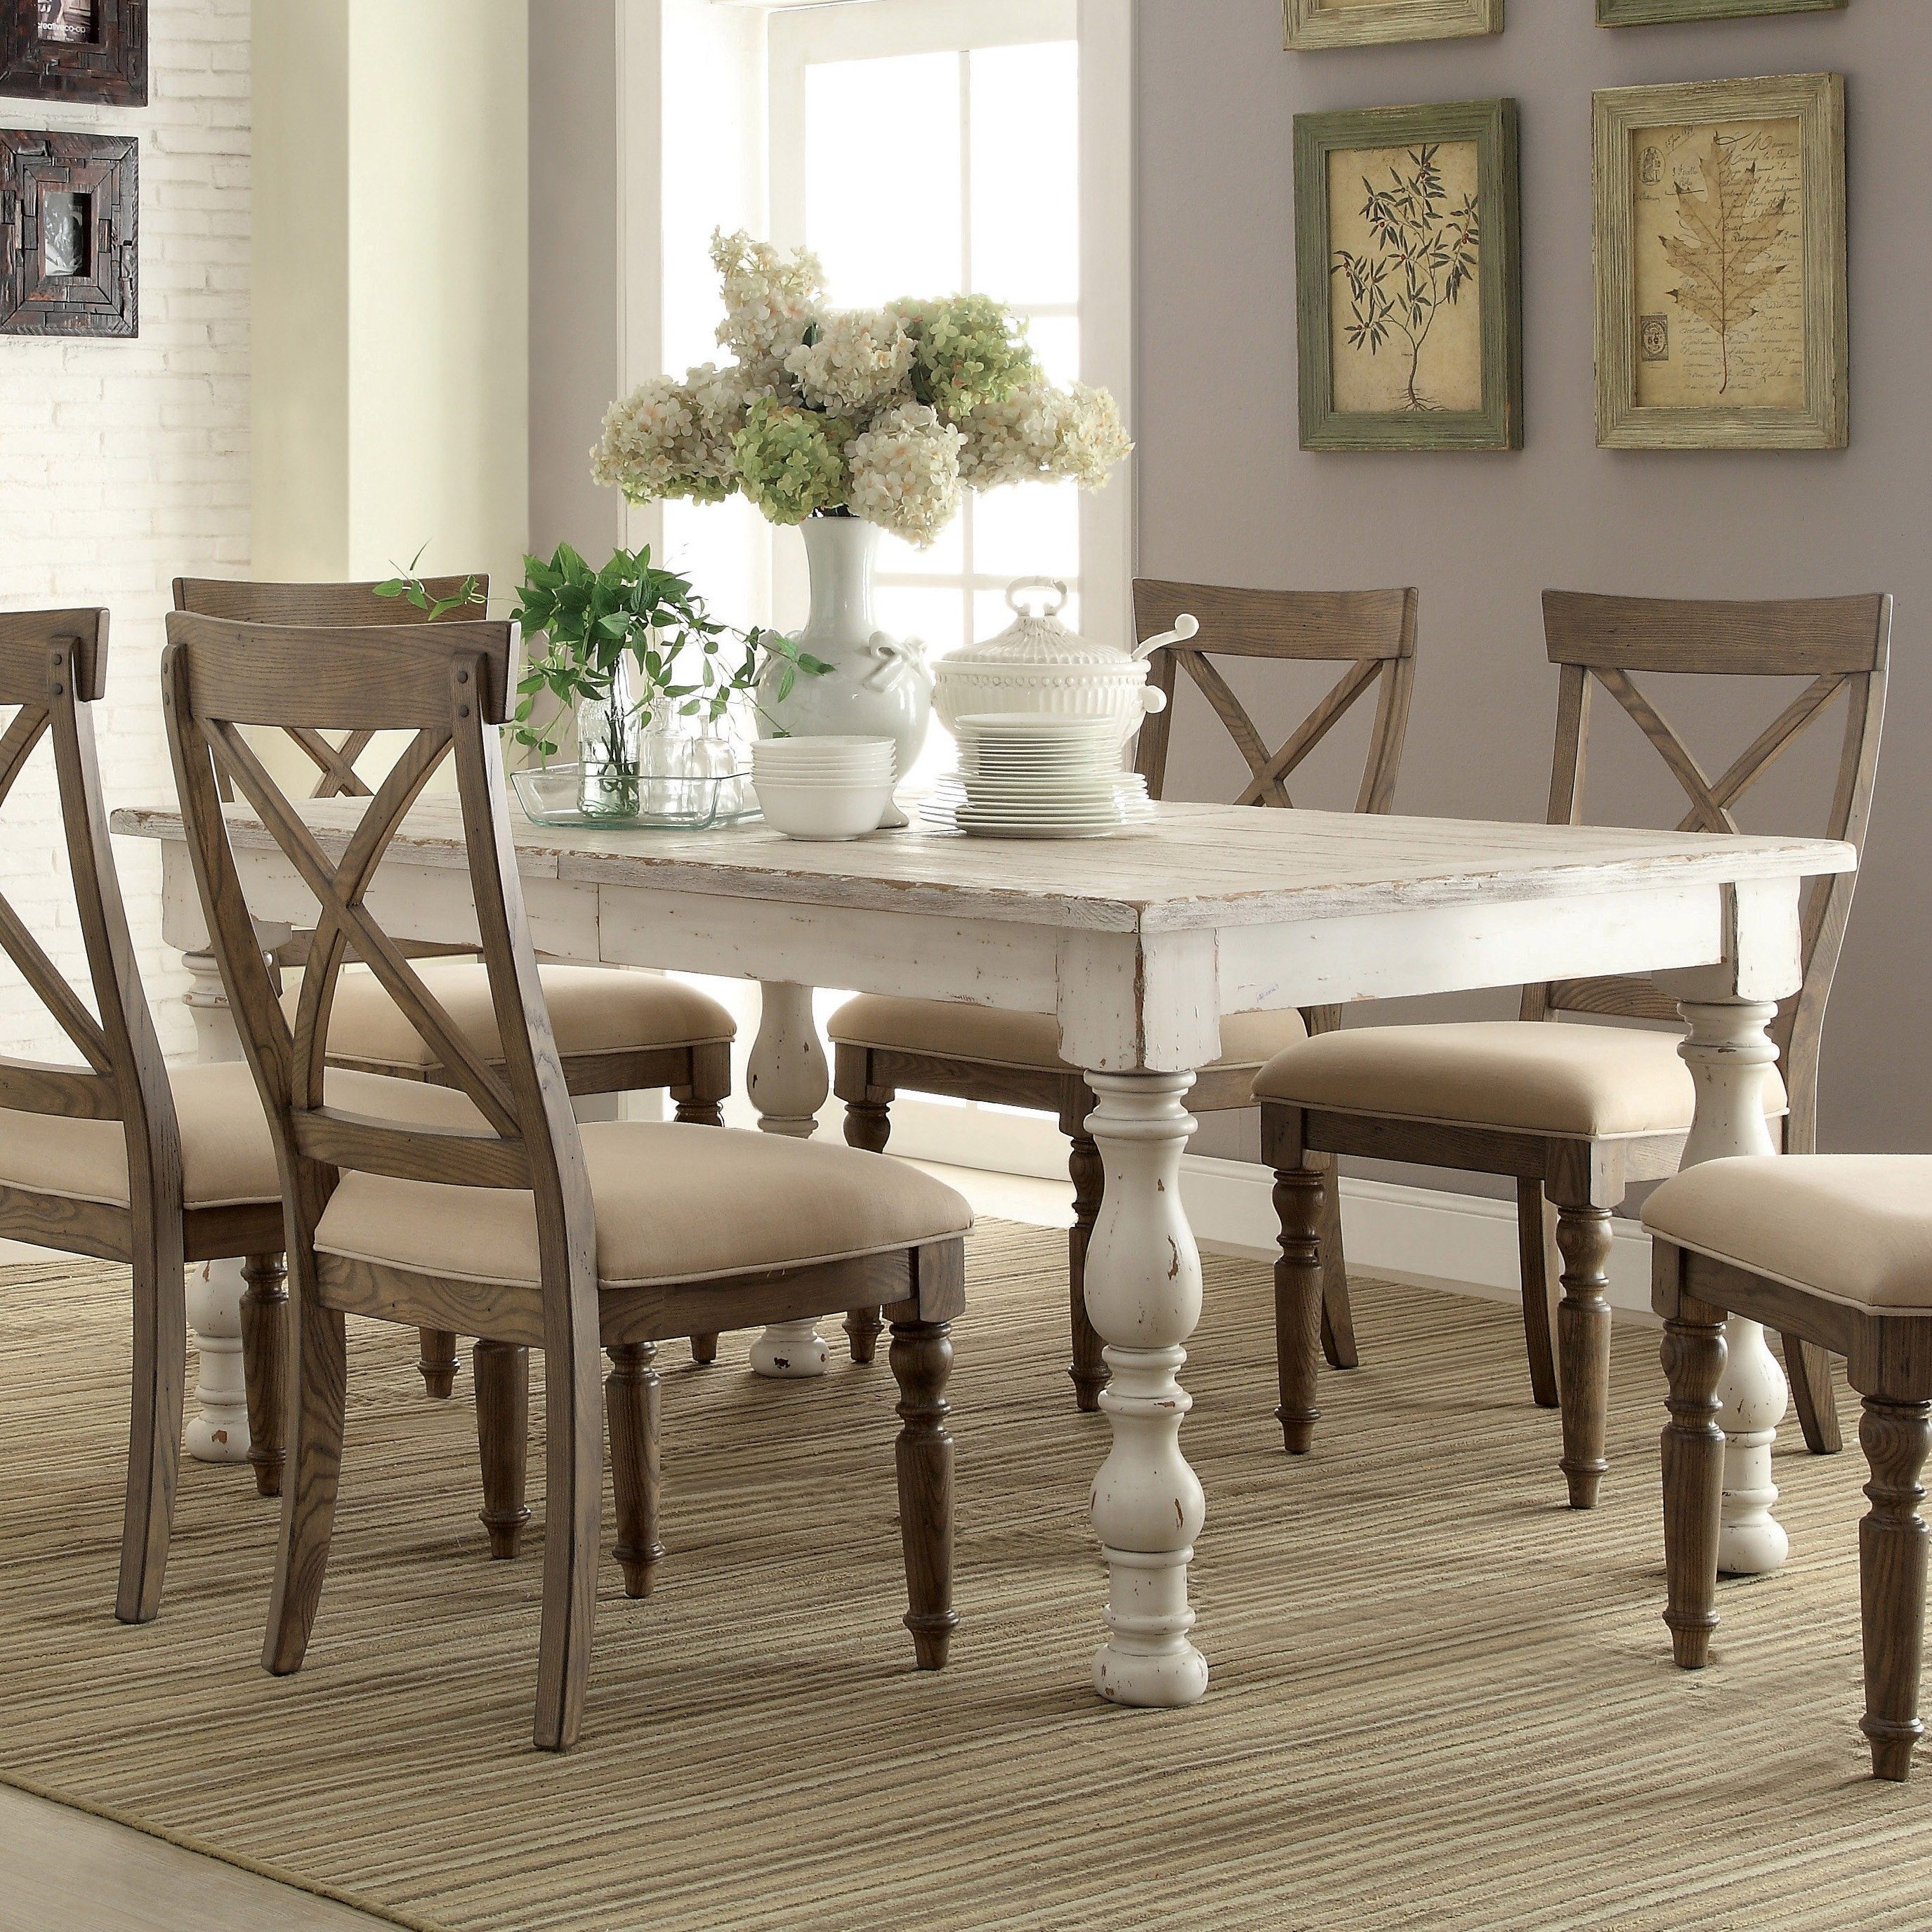 Aberdeen Wood Rectangular Dining Table and Chairs in ...